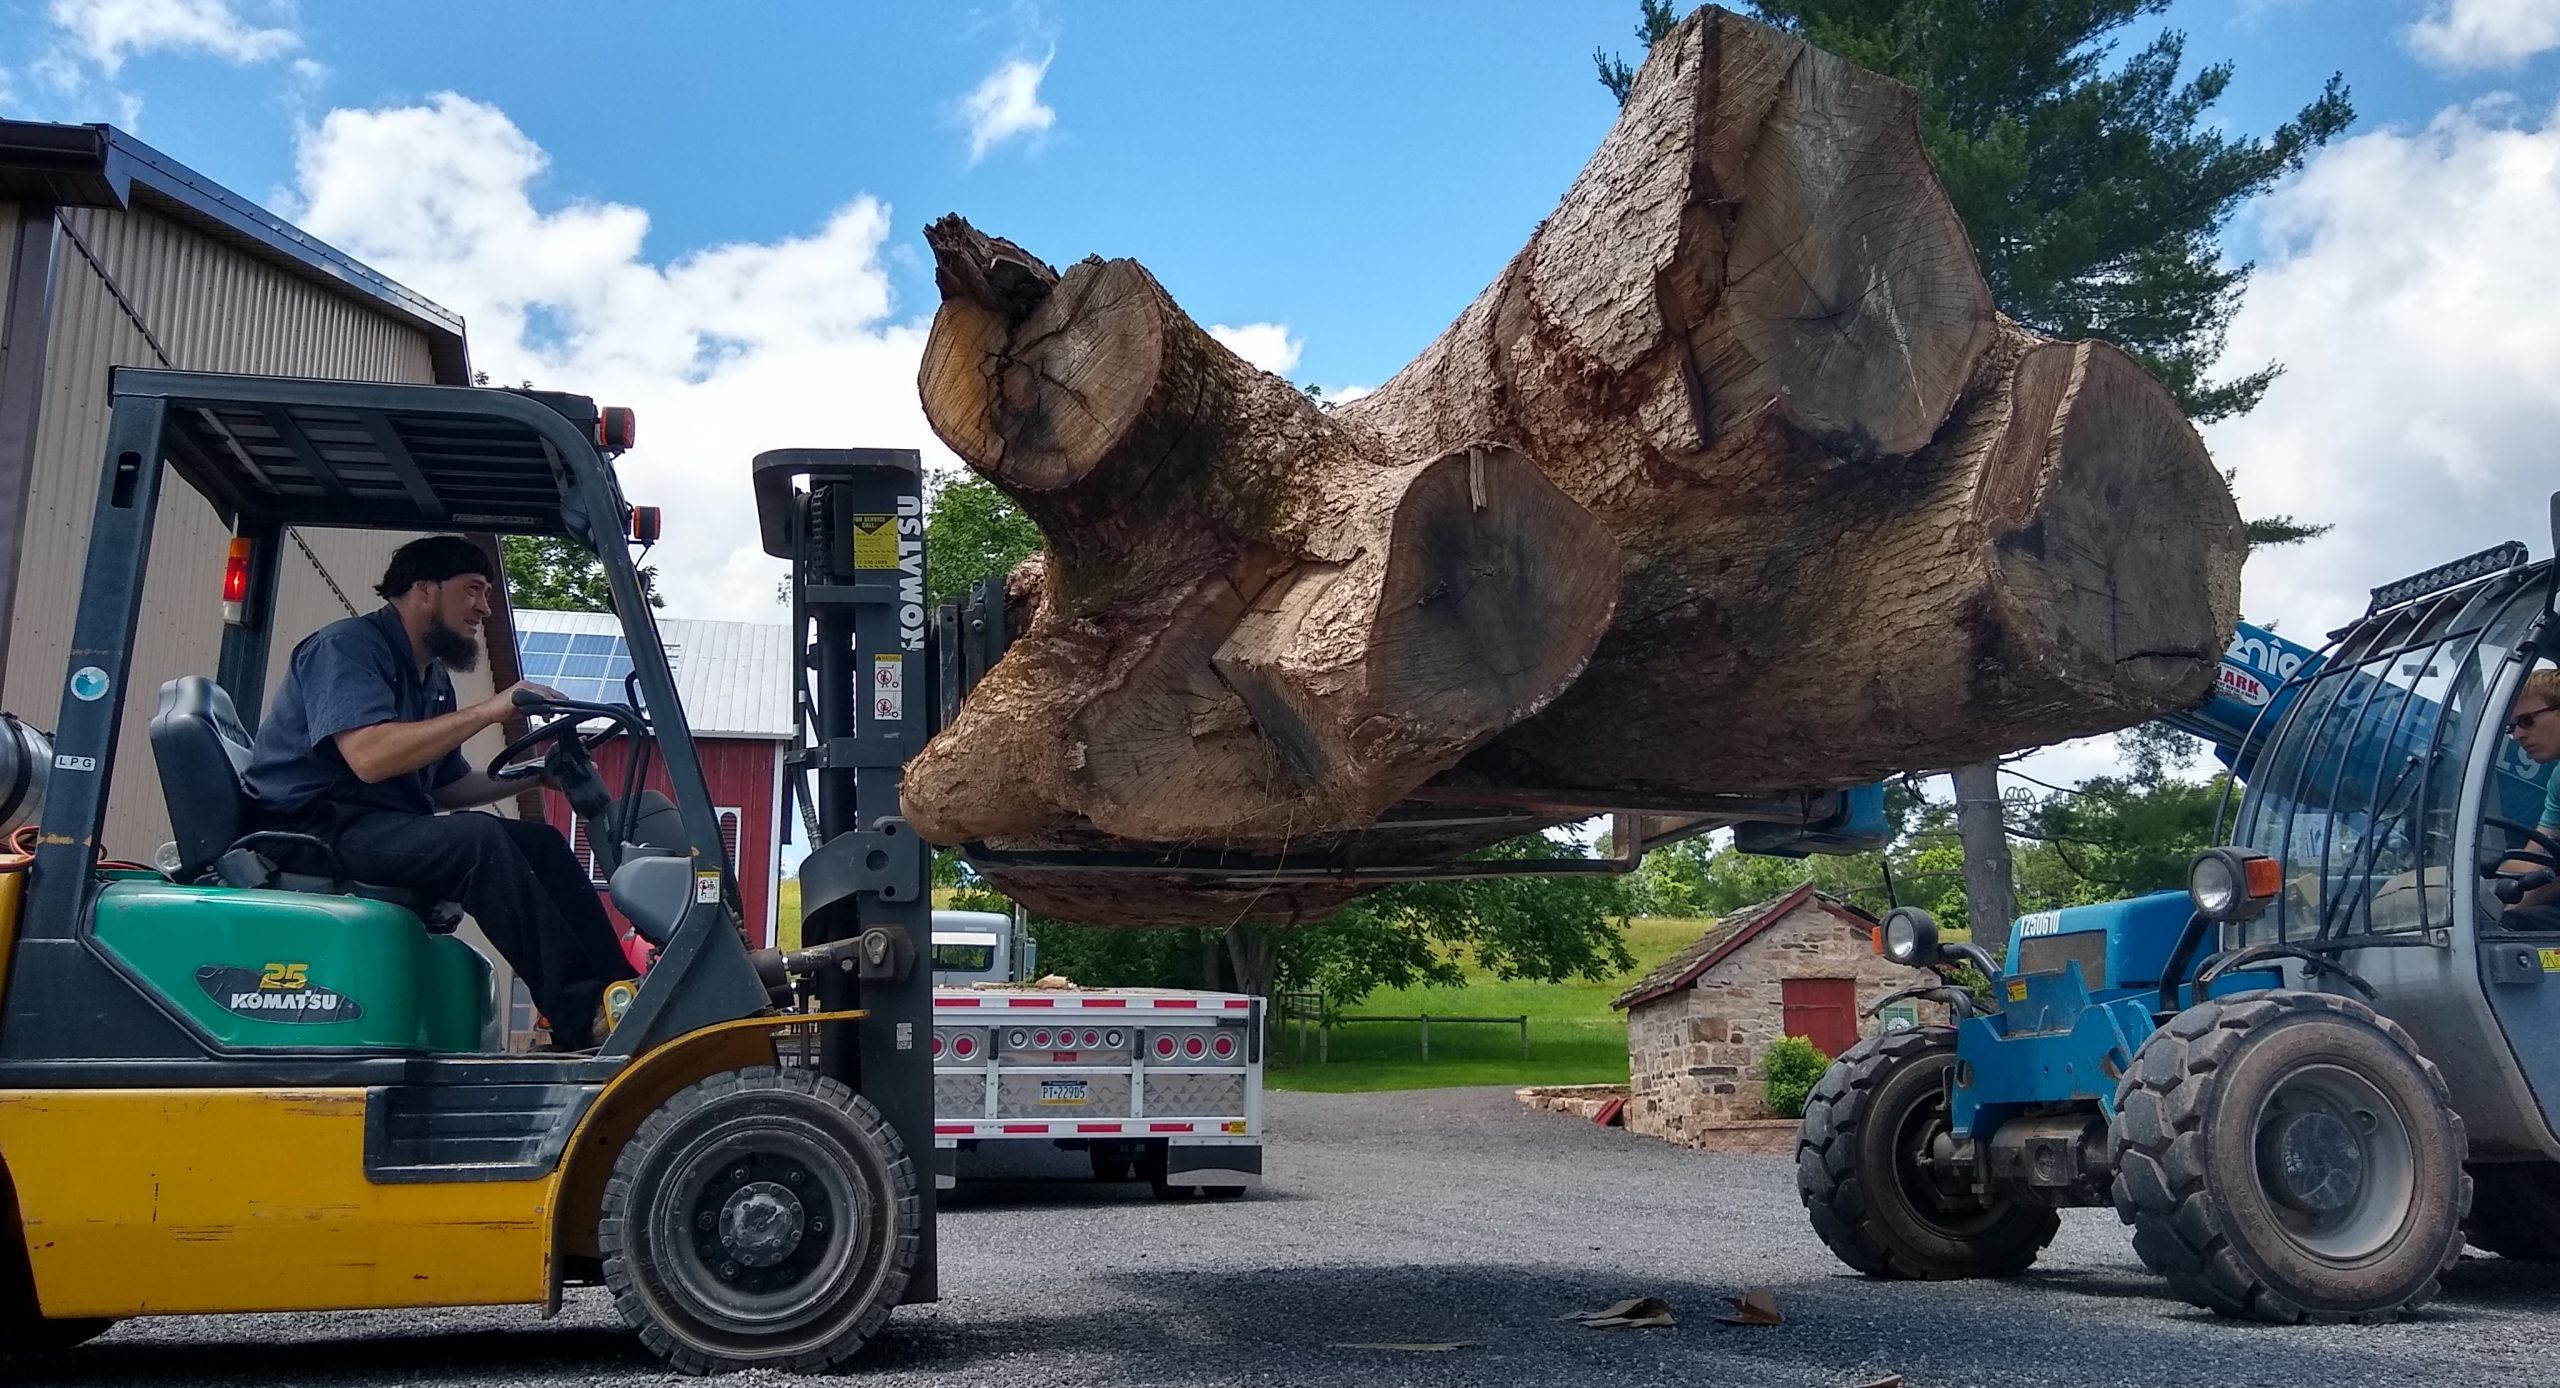 large tree trunk loaded on forklift